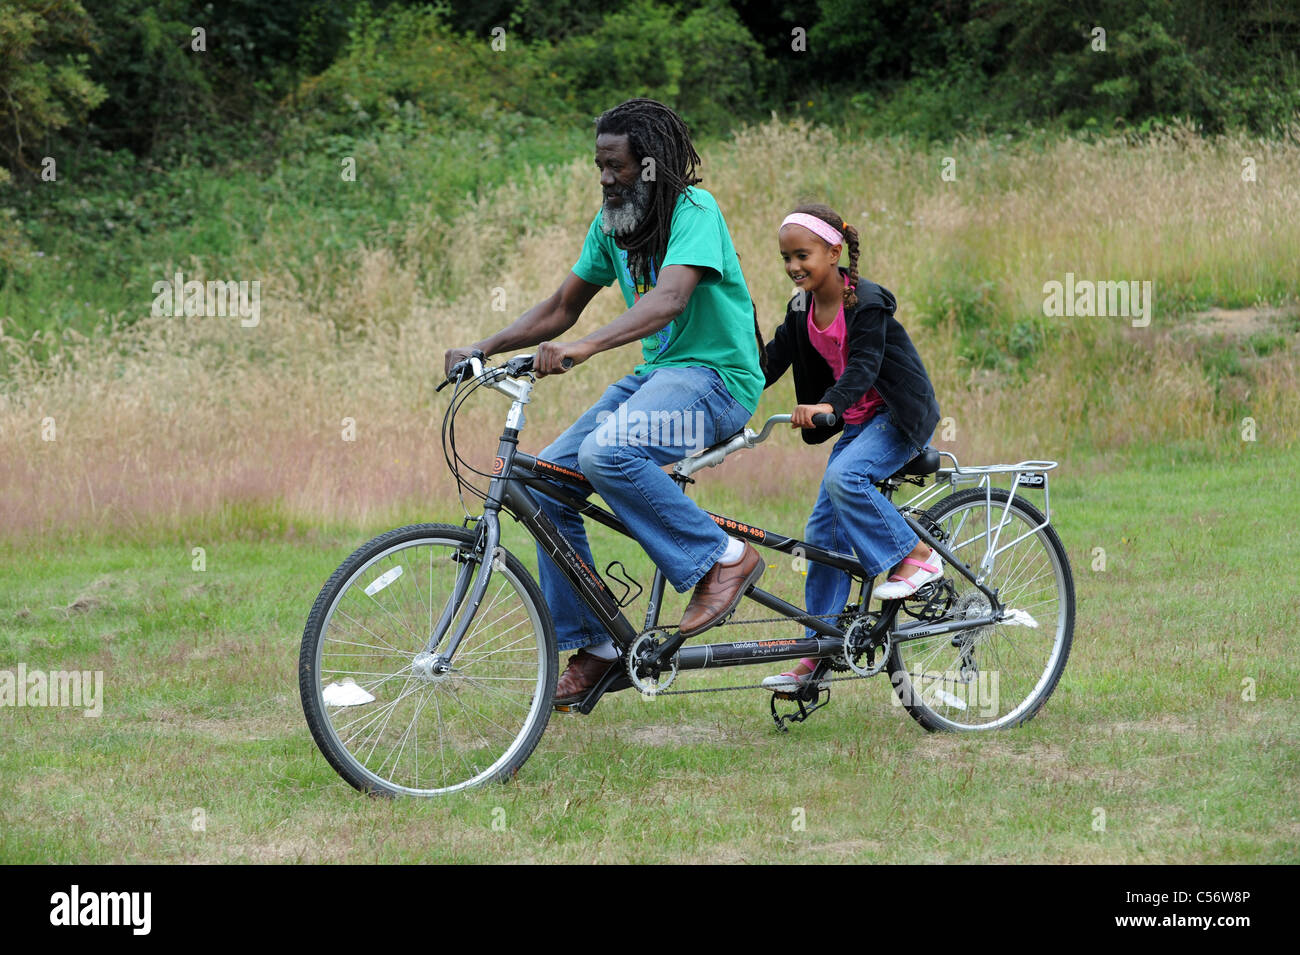 Man and girl riding a tandem bicycle in field Uk - Stock Image